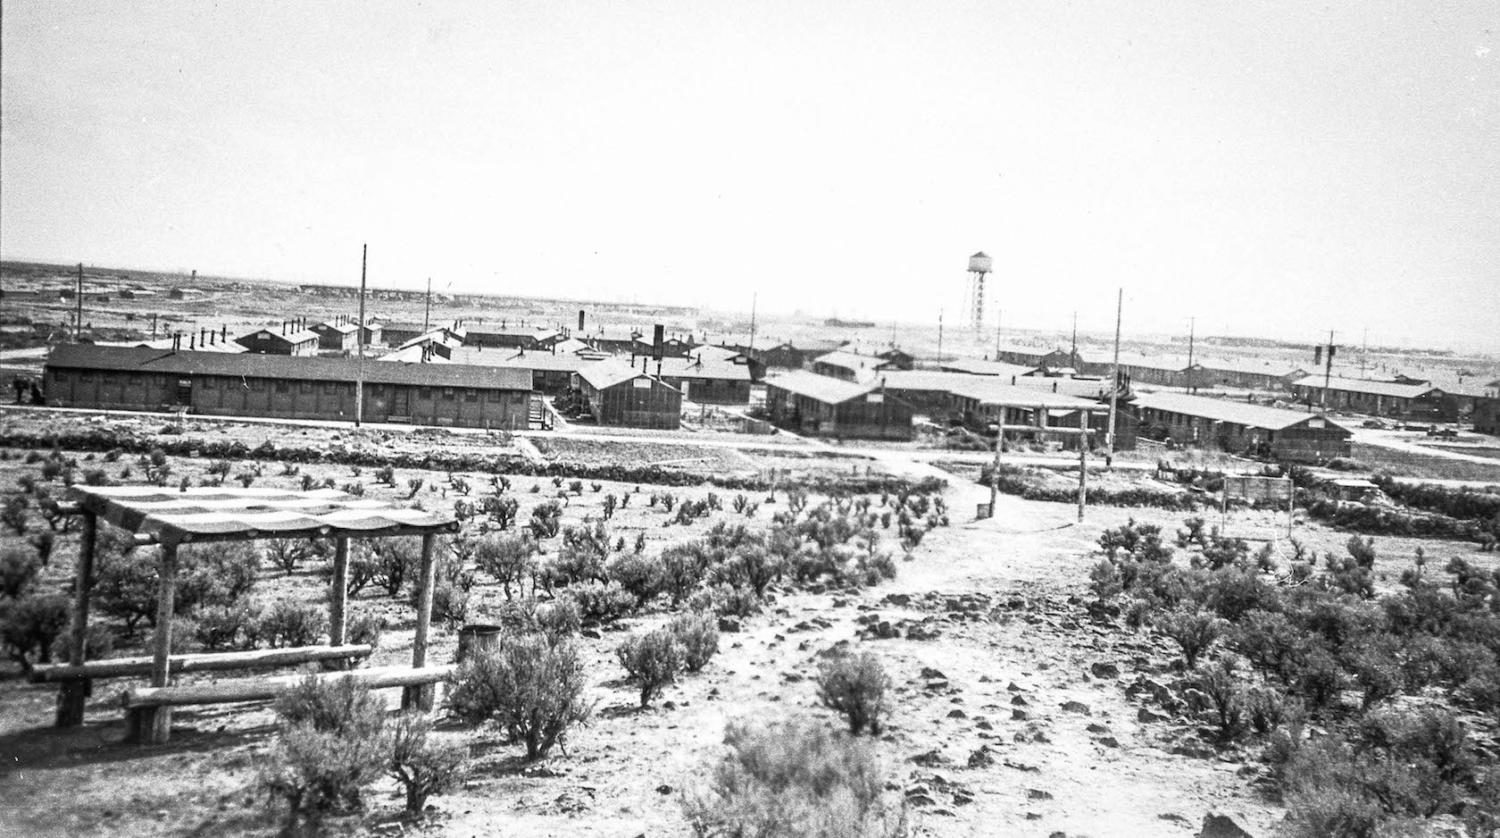 The Mindoka internment camp in southern Idaho, where 49 Lincoln students were taken during World War Two.  Courtesy Densho Digital Repository